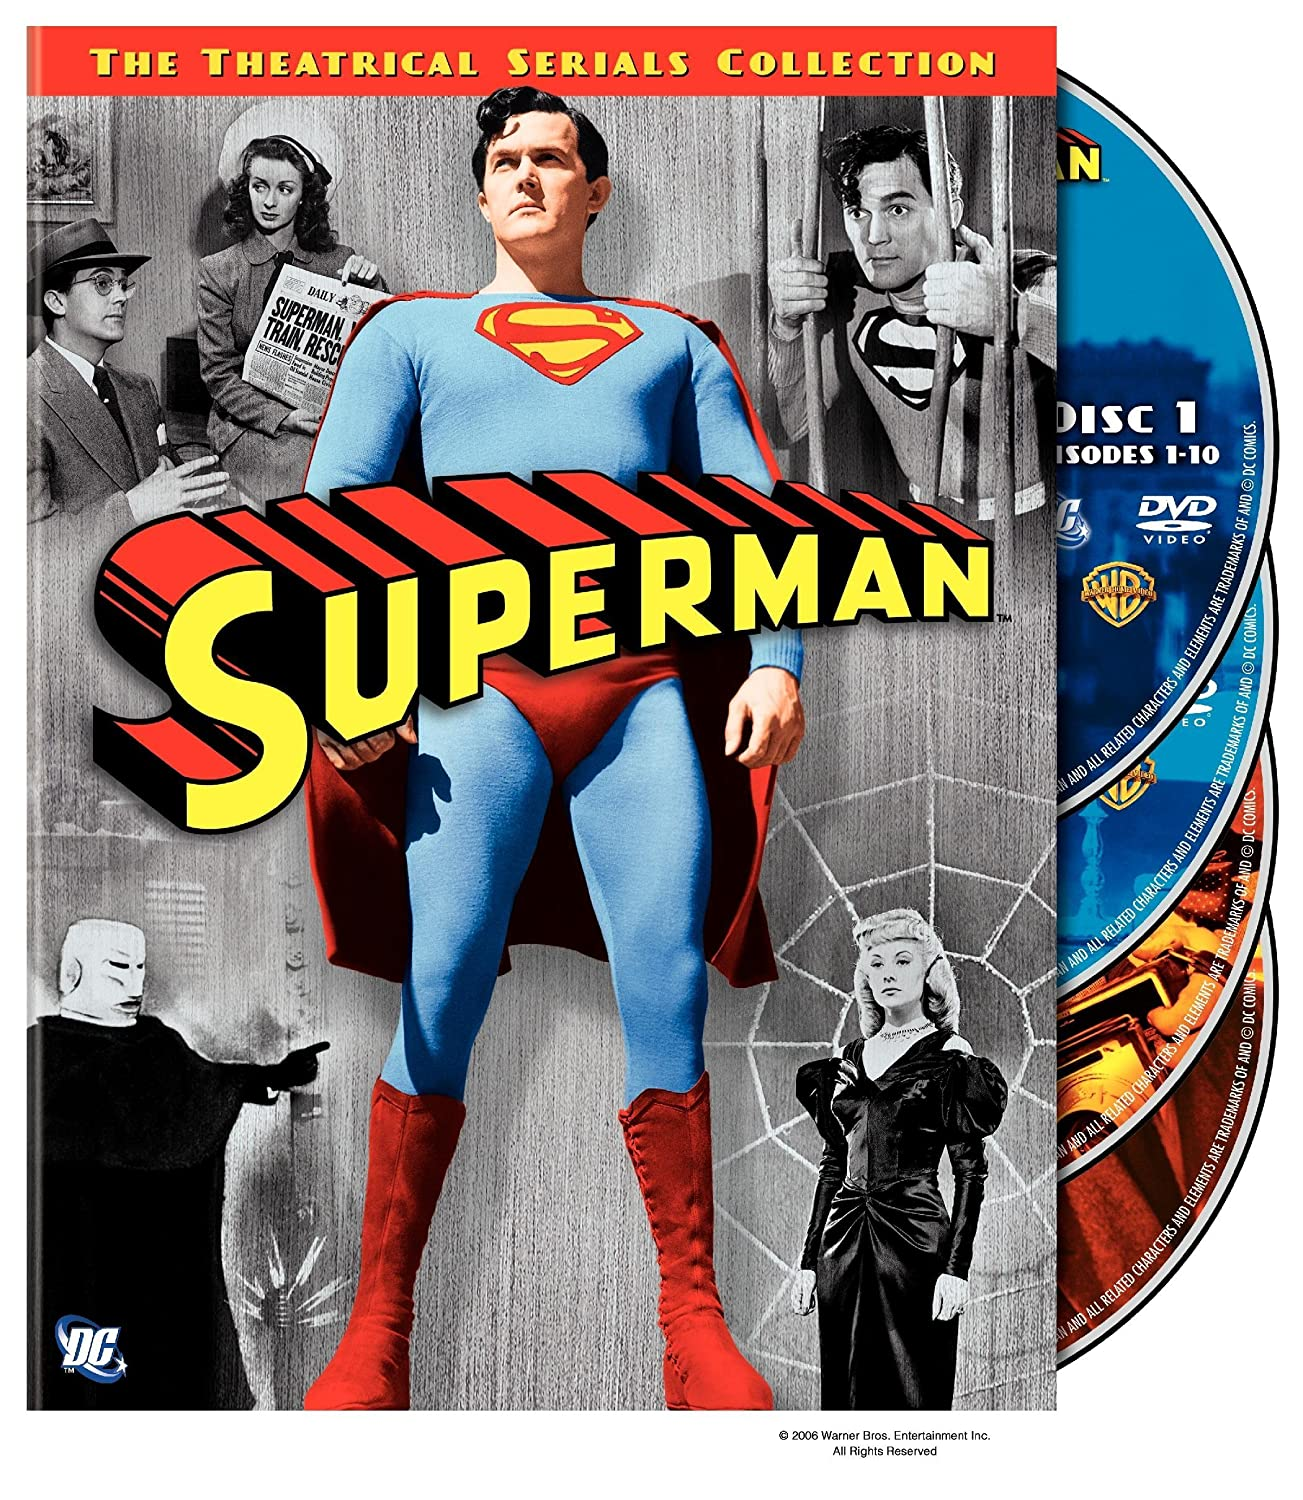 DVD : Superman: The Theatrical Serials Collection (, Dolby, Standard Screen, 4 Disc)